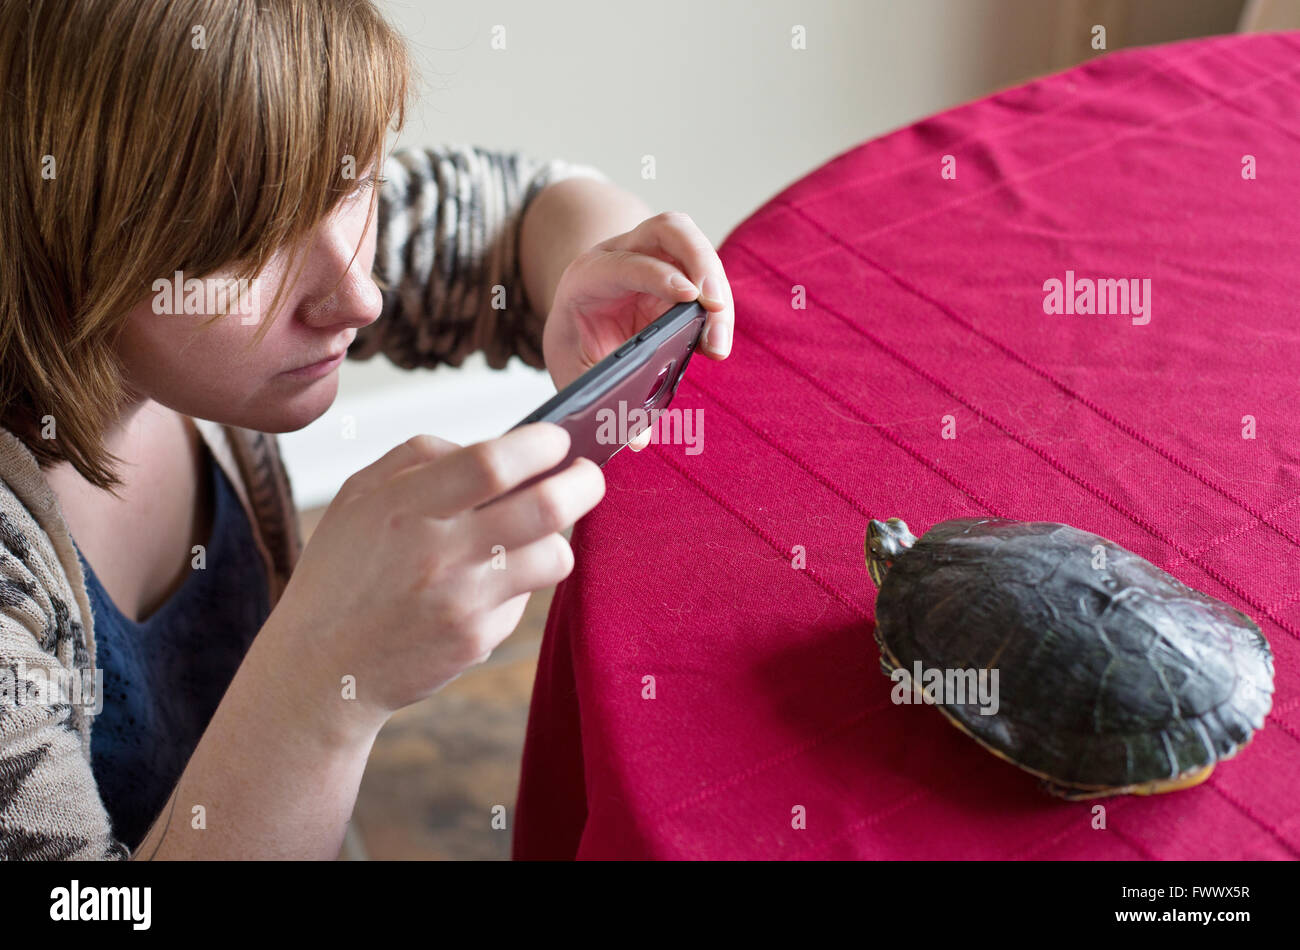 Creepy Turtle Stock Photos & Creepy Turtle Stock Images - Alamy